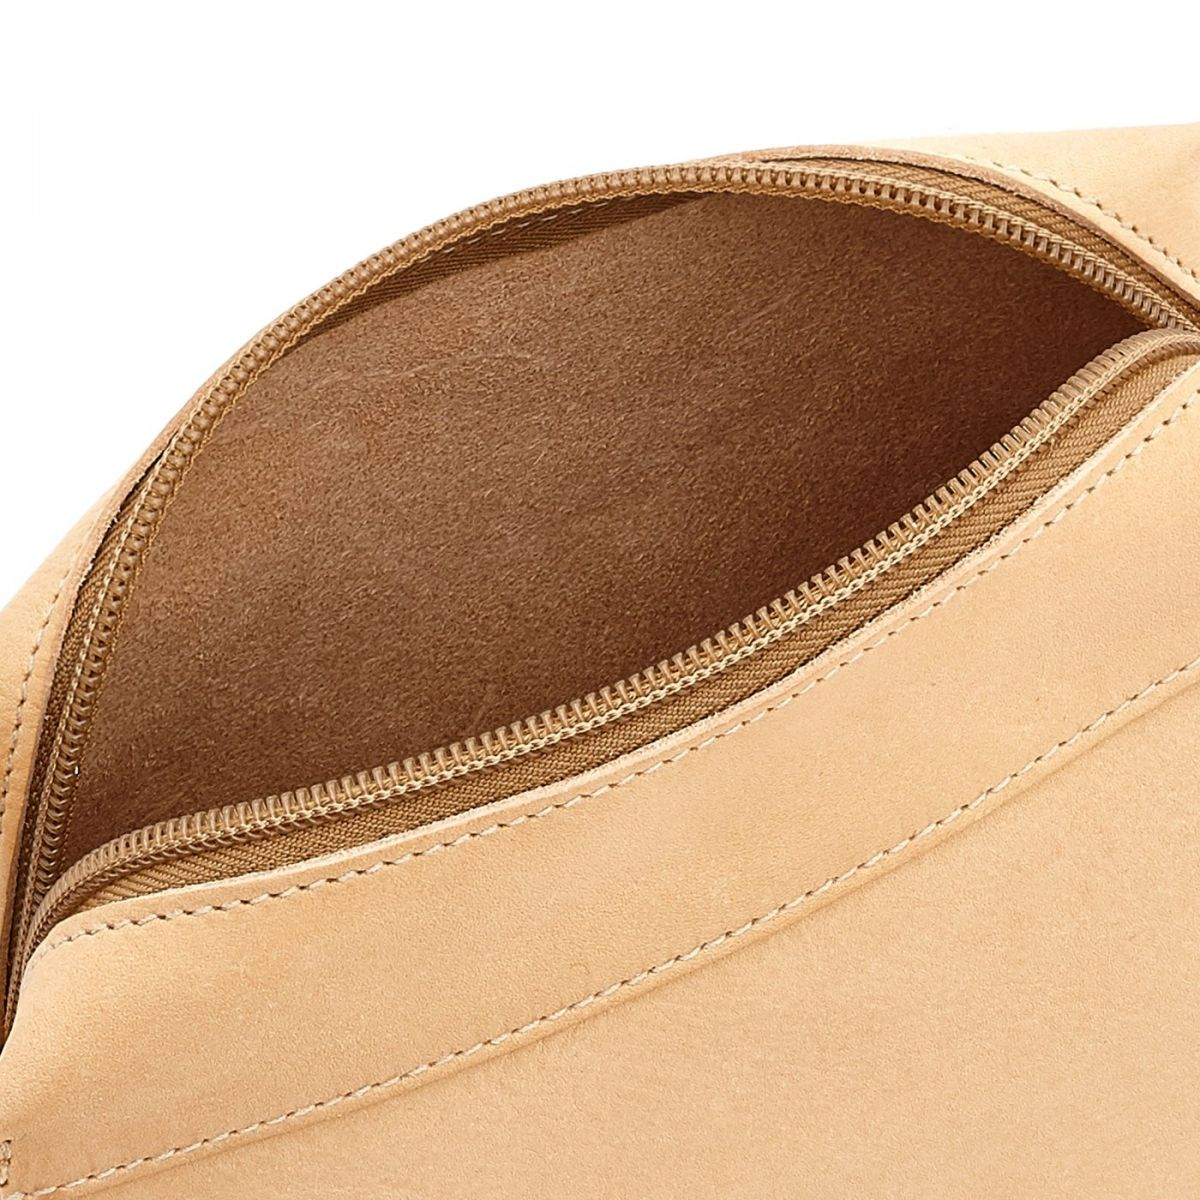 Women's Crossbody Bag Salina in Cowhide Leather BCR174 color Natural | Details